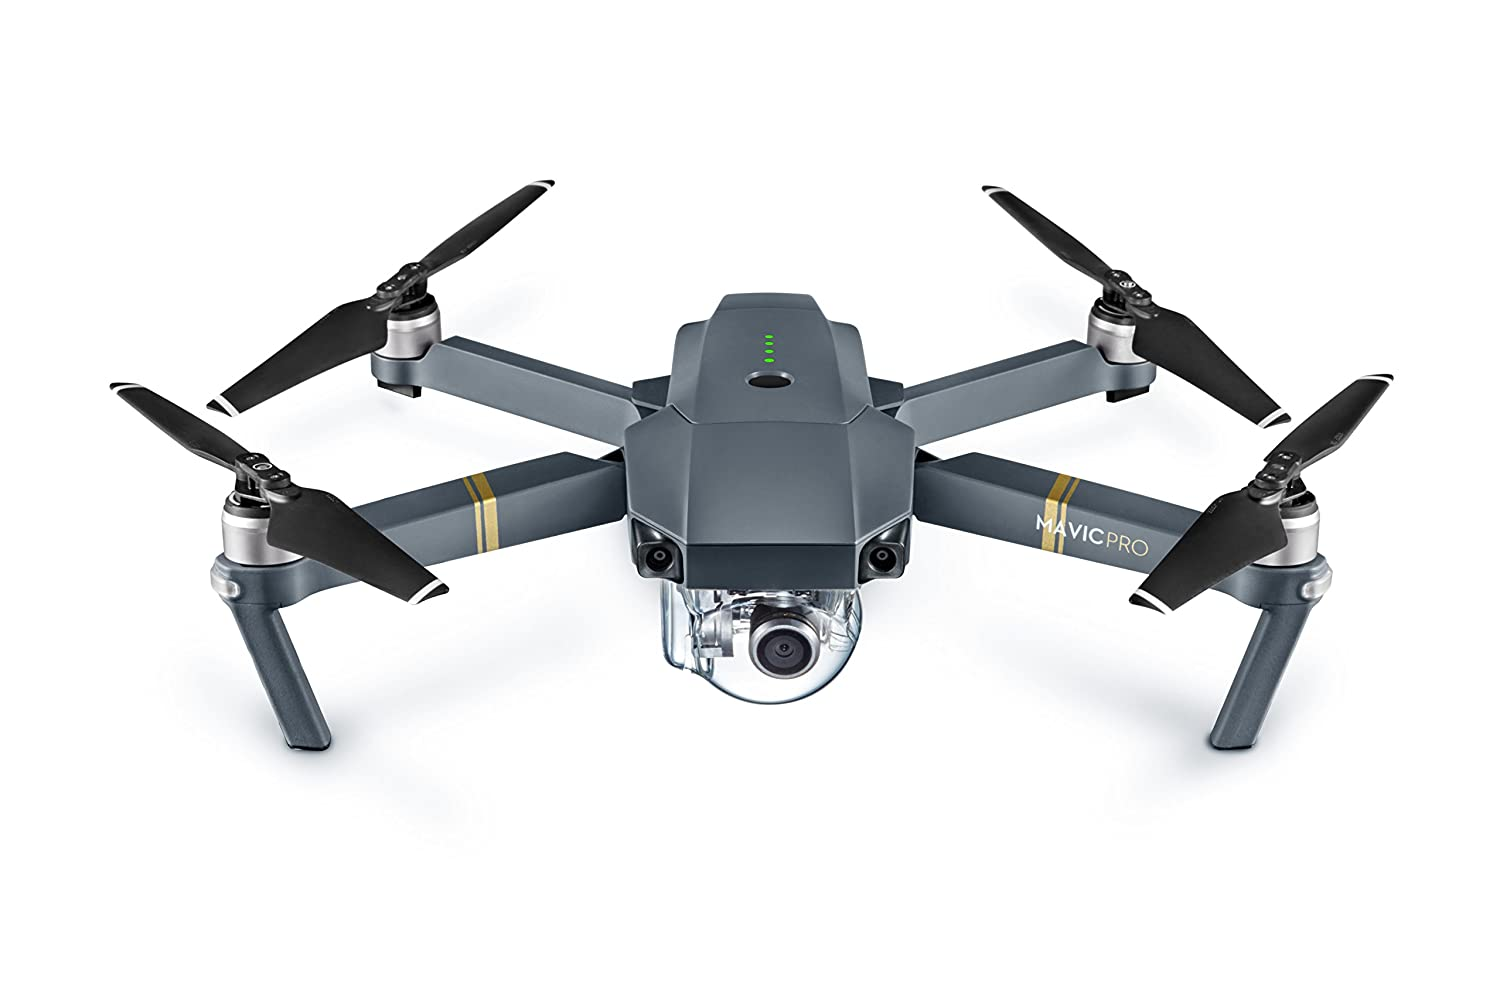 Amazon.com : DJI Mavic Pro Our drone of choice for arial photography and video.